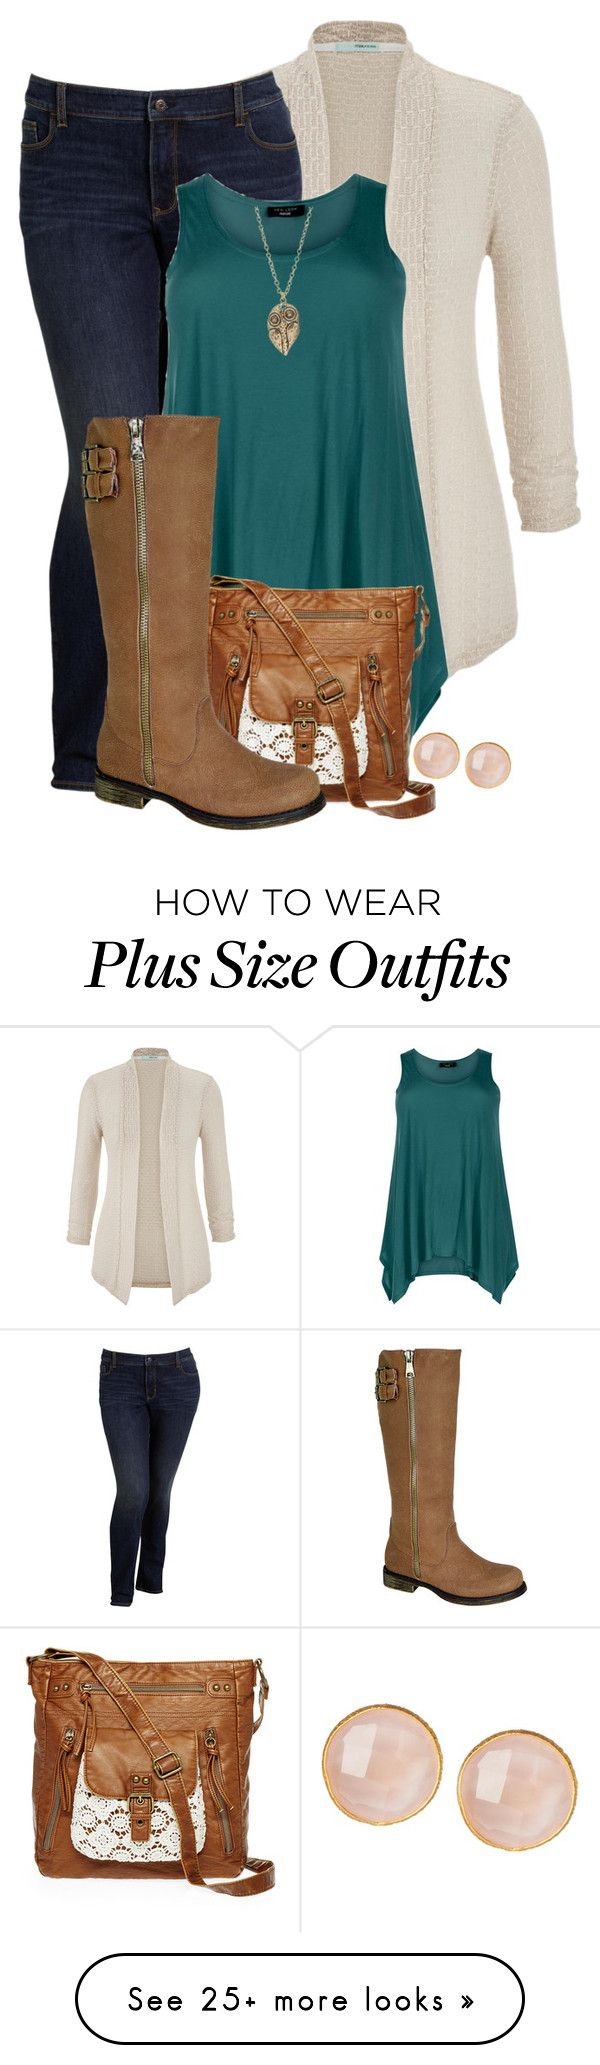 """Untitled #875"" by menthienicole on Polyvore featuring maurices, Old Navy, T-shirt & Jeans, Zad and Saachi"